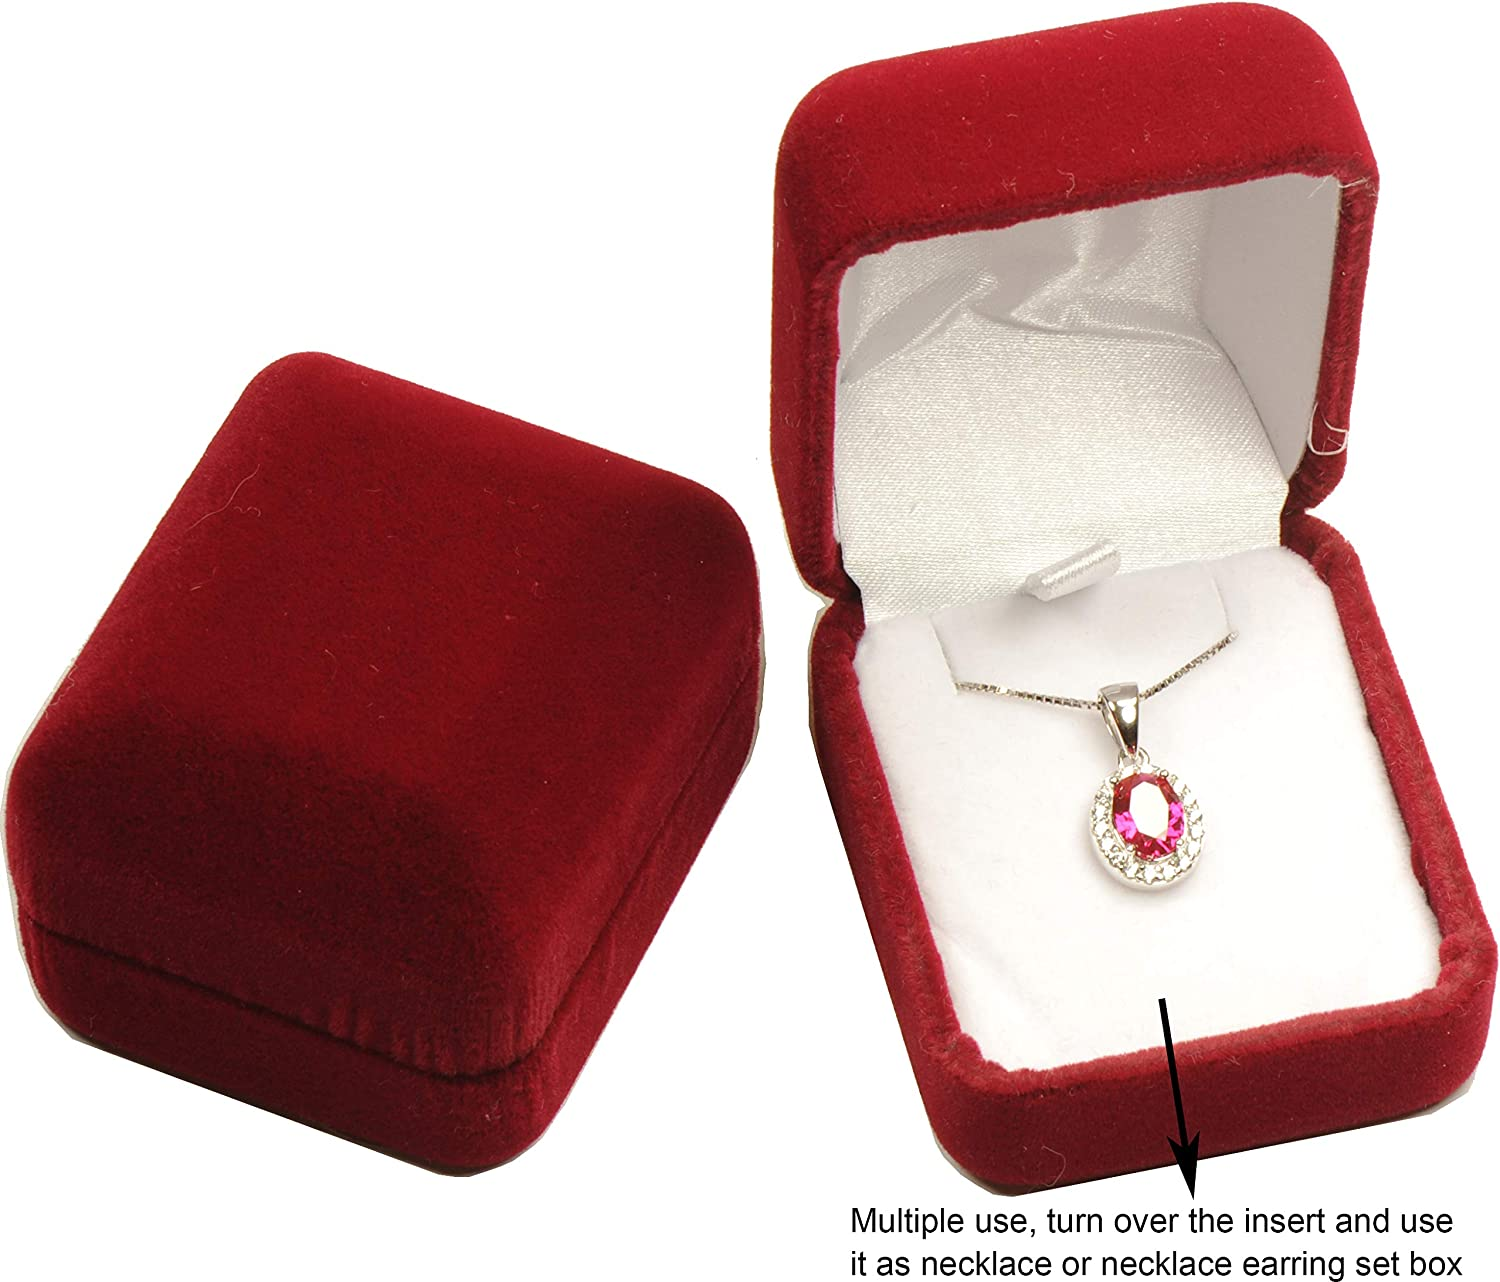 D *1.5〞 W with an Indiv H Not a Bigger Earring Necklace Box, Suggested for Small Earring Necklace Sets *2.16〞 Wholesale Luxury Velvet Multiple Use Earring Necklace Pendant Jewelry Gift Box Burgundy Red Color Soft Touch Premium Velvet Material Size 1.85〞